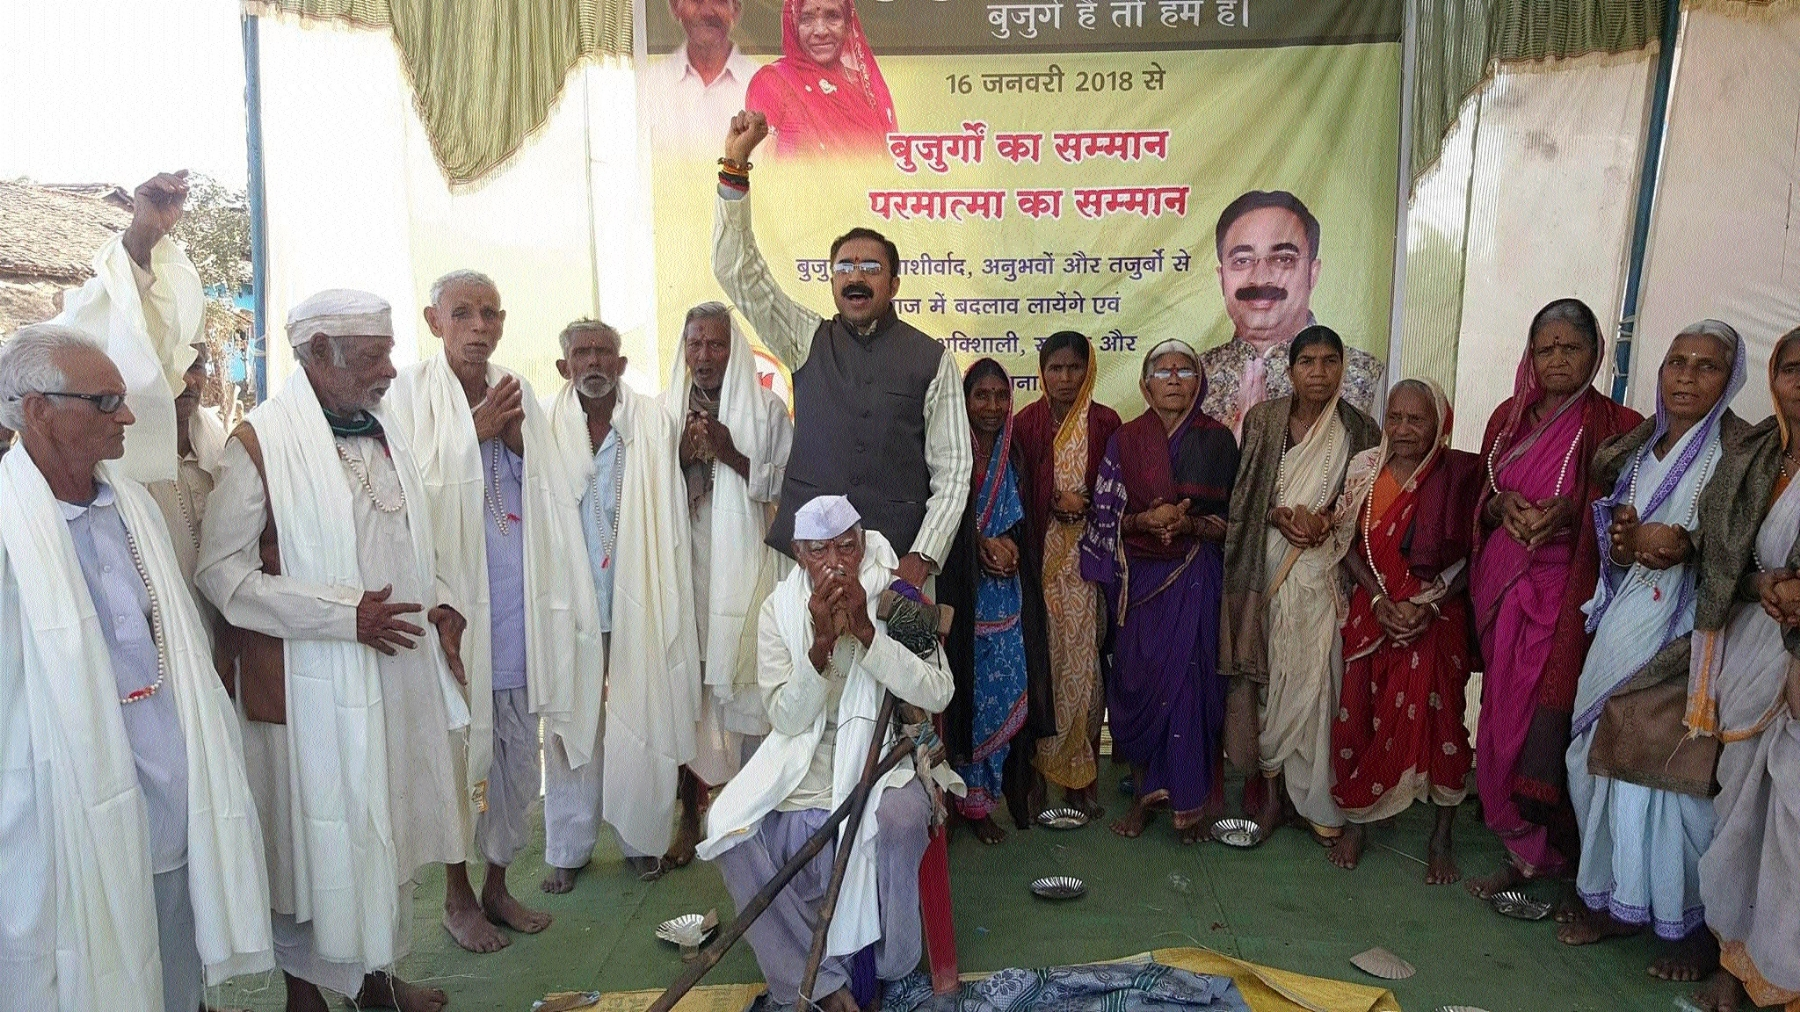 Masani visits 51st village while honouring senior citizens